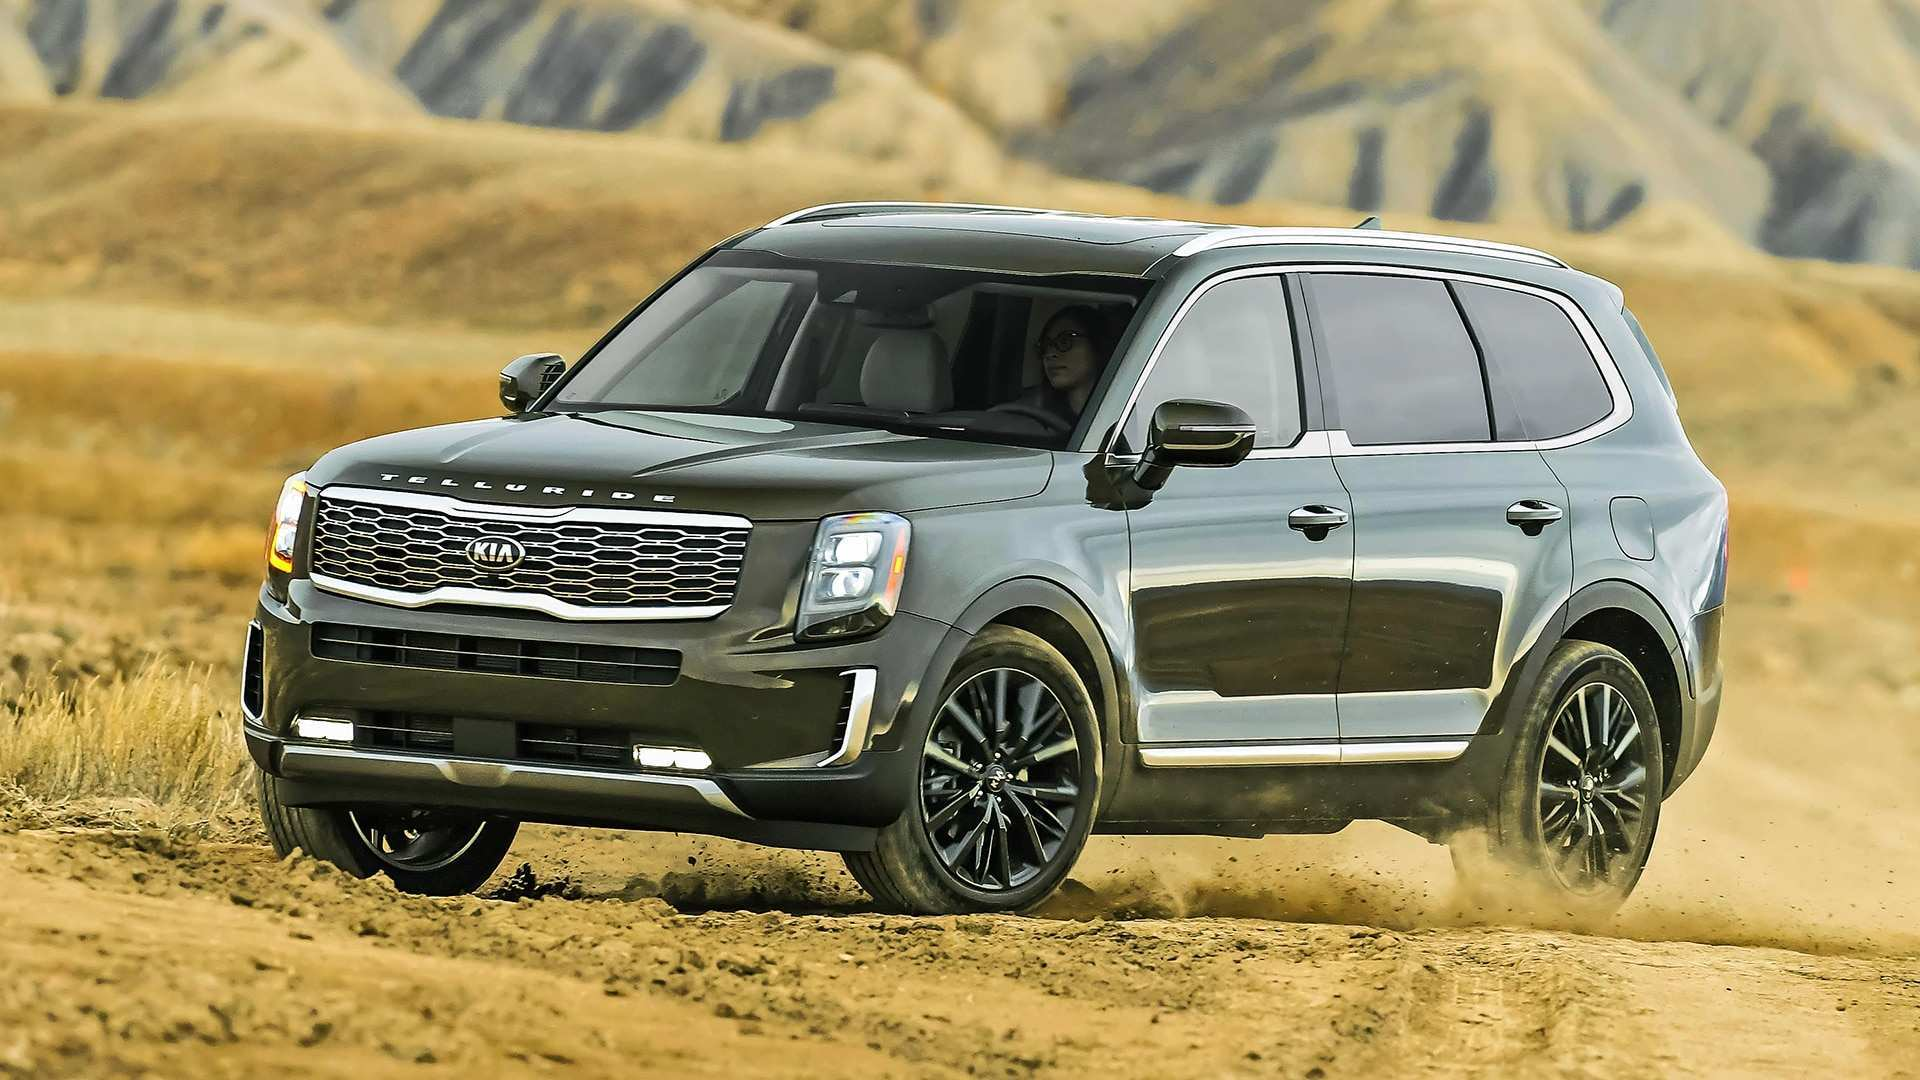 93 New Kia Telluride 2020 Review Engine